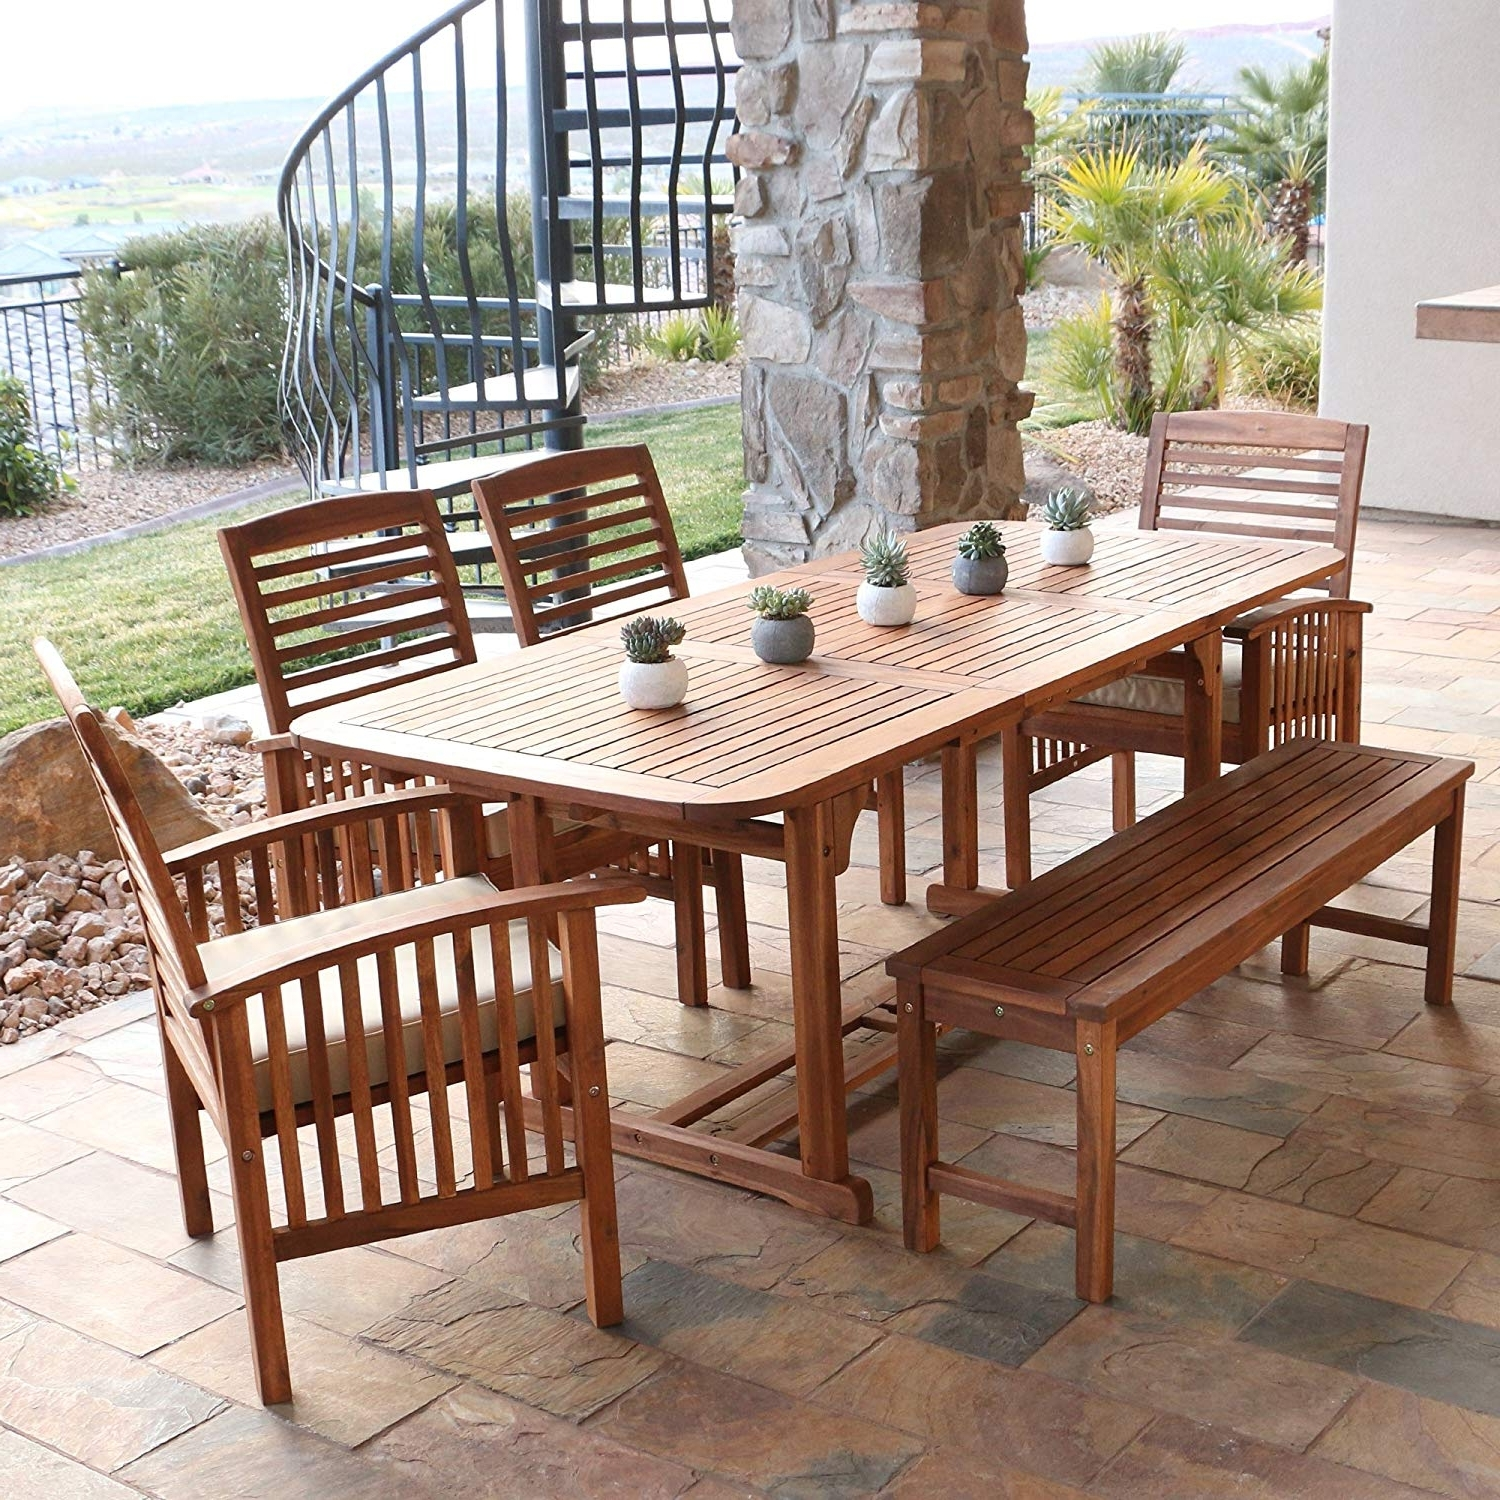 2018 Acacia Dining Tables With Regard To Amazon: We Furniture Solid Acacia Wood 6 Piece Patio Dining Set (Gallery 22 of 25)